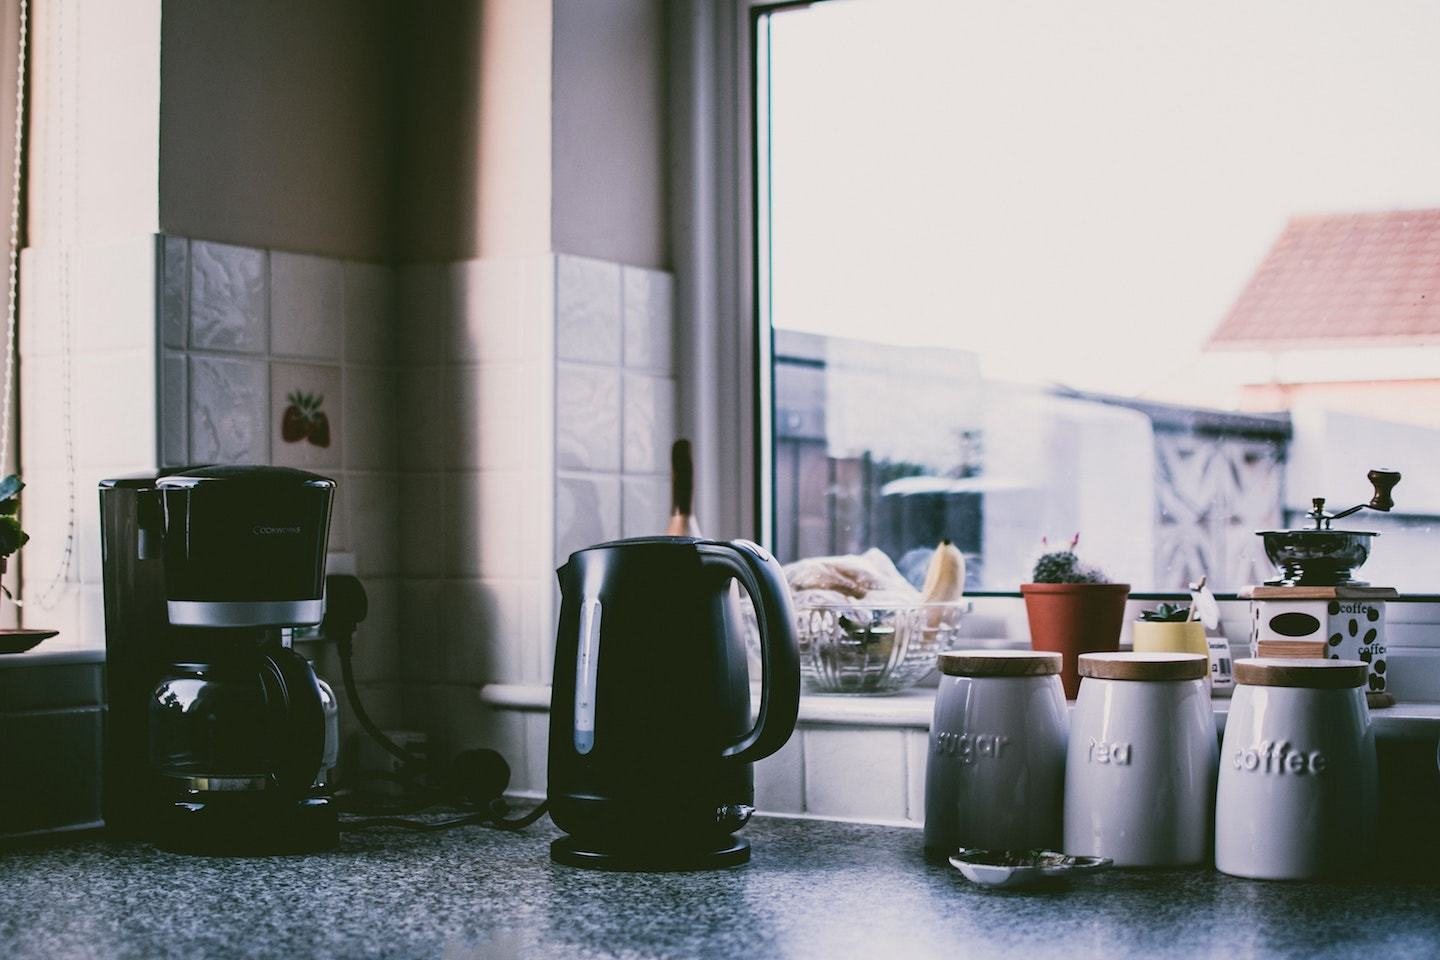 coffee maker and tea kettle on kitchen counter